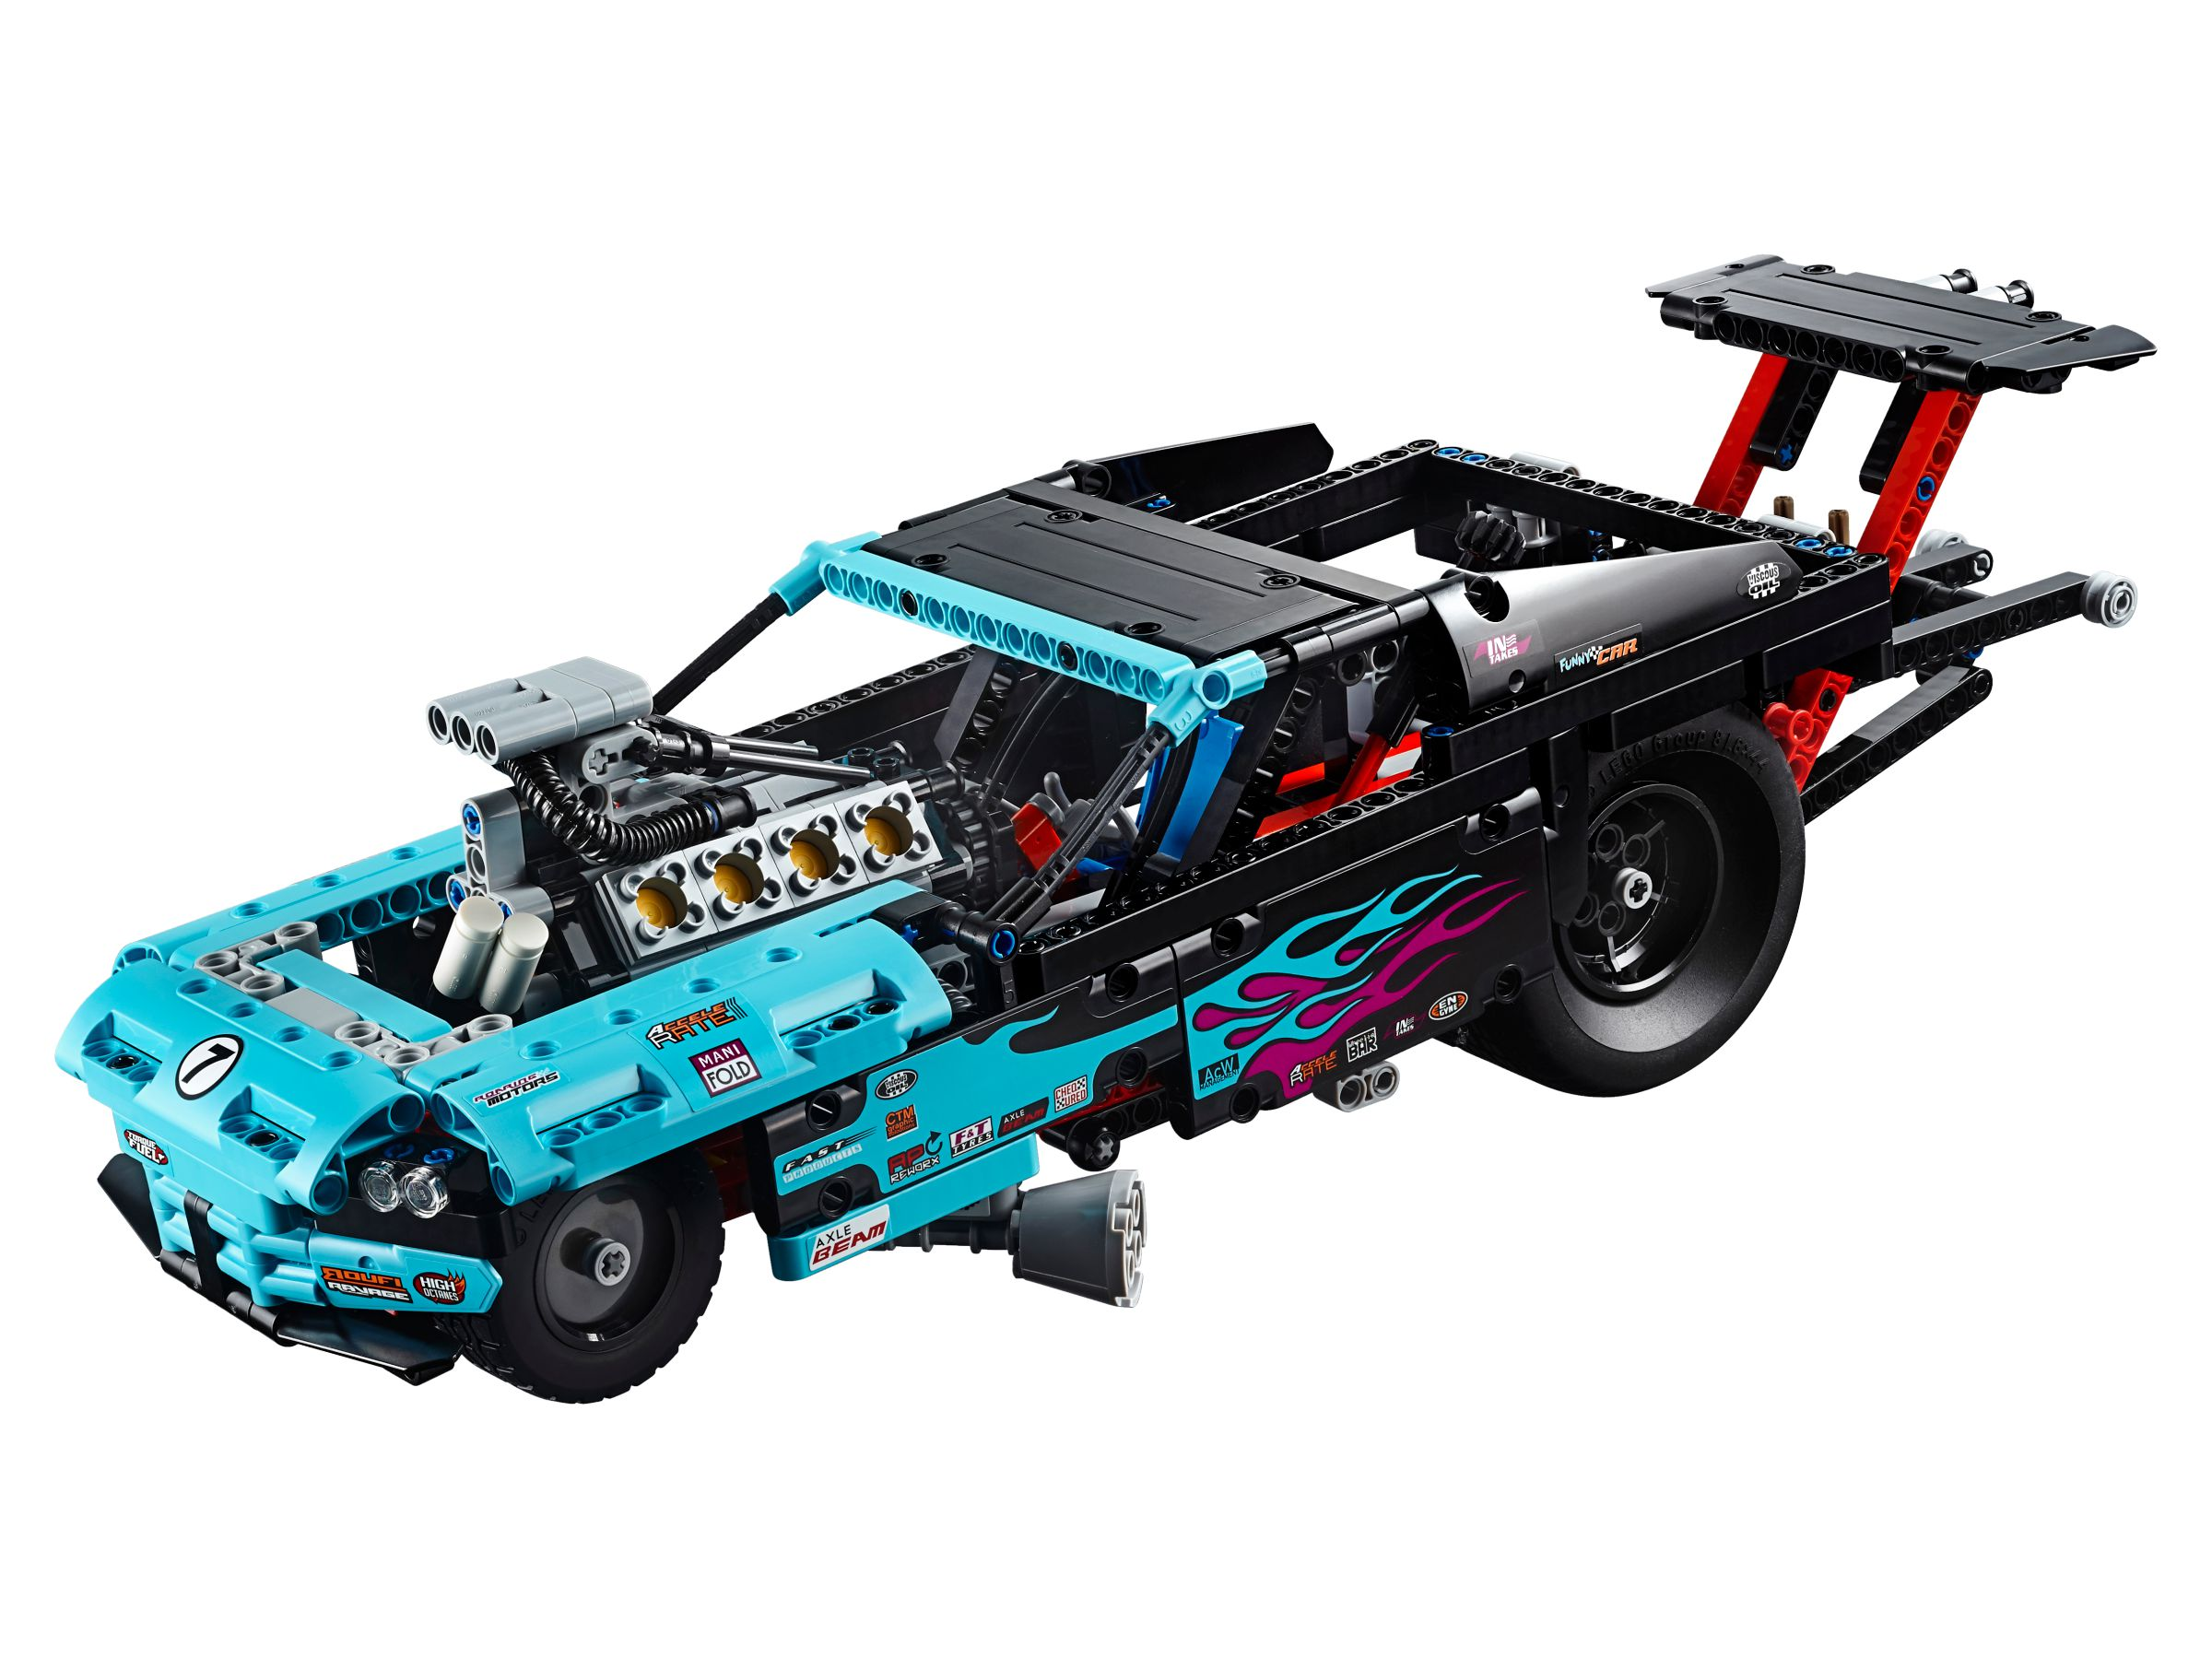 lego 42050 drag racer technic 2016 brickmerge. Black Bedroom Furniture Sets. Home Design Ideas